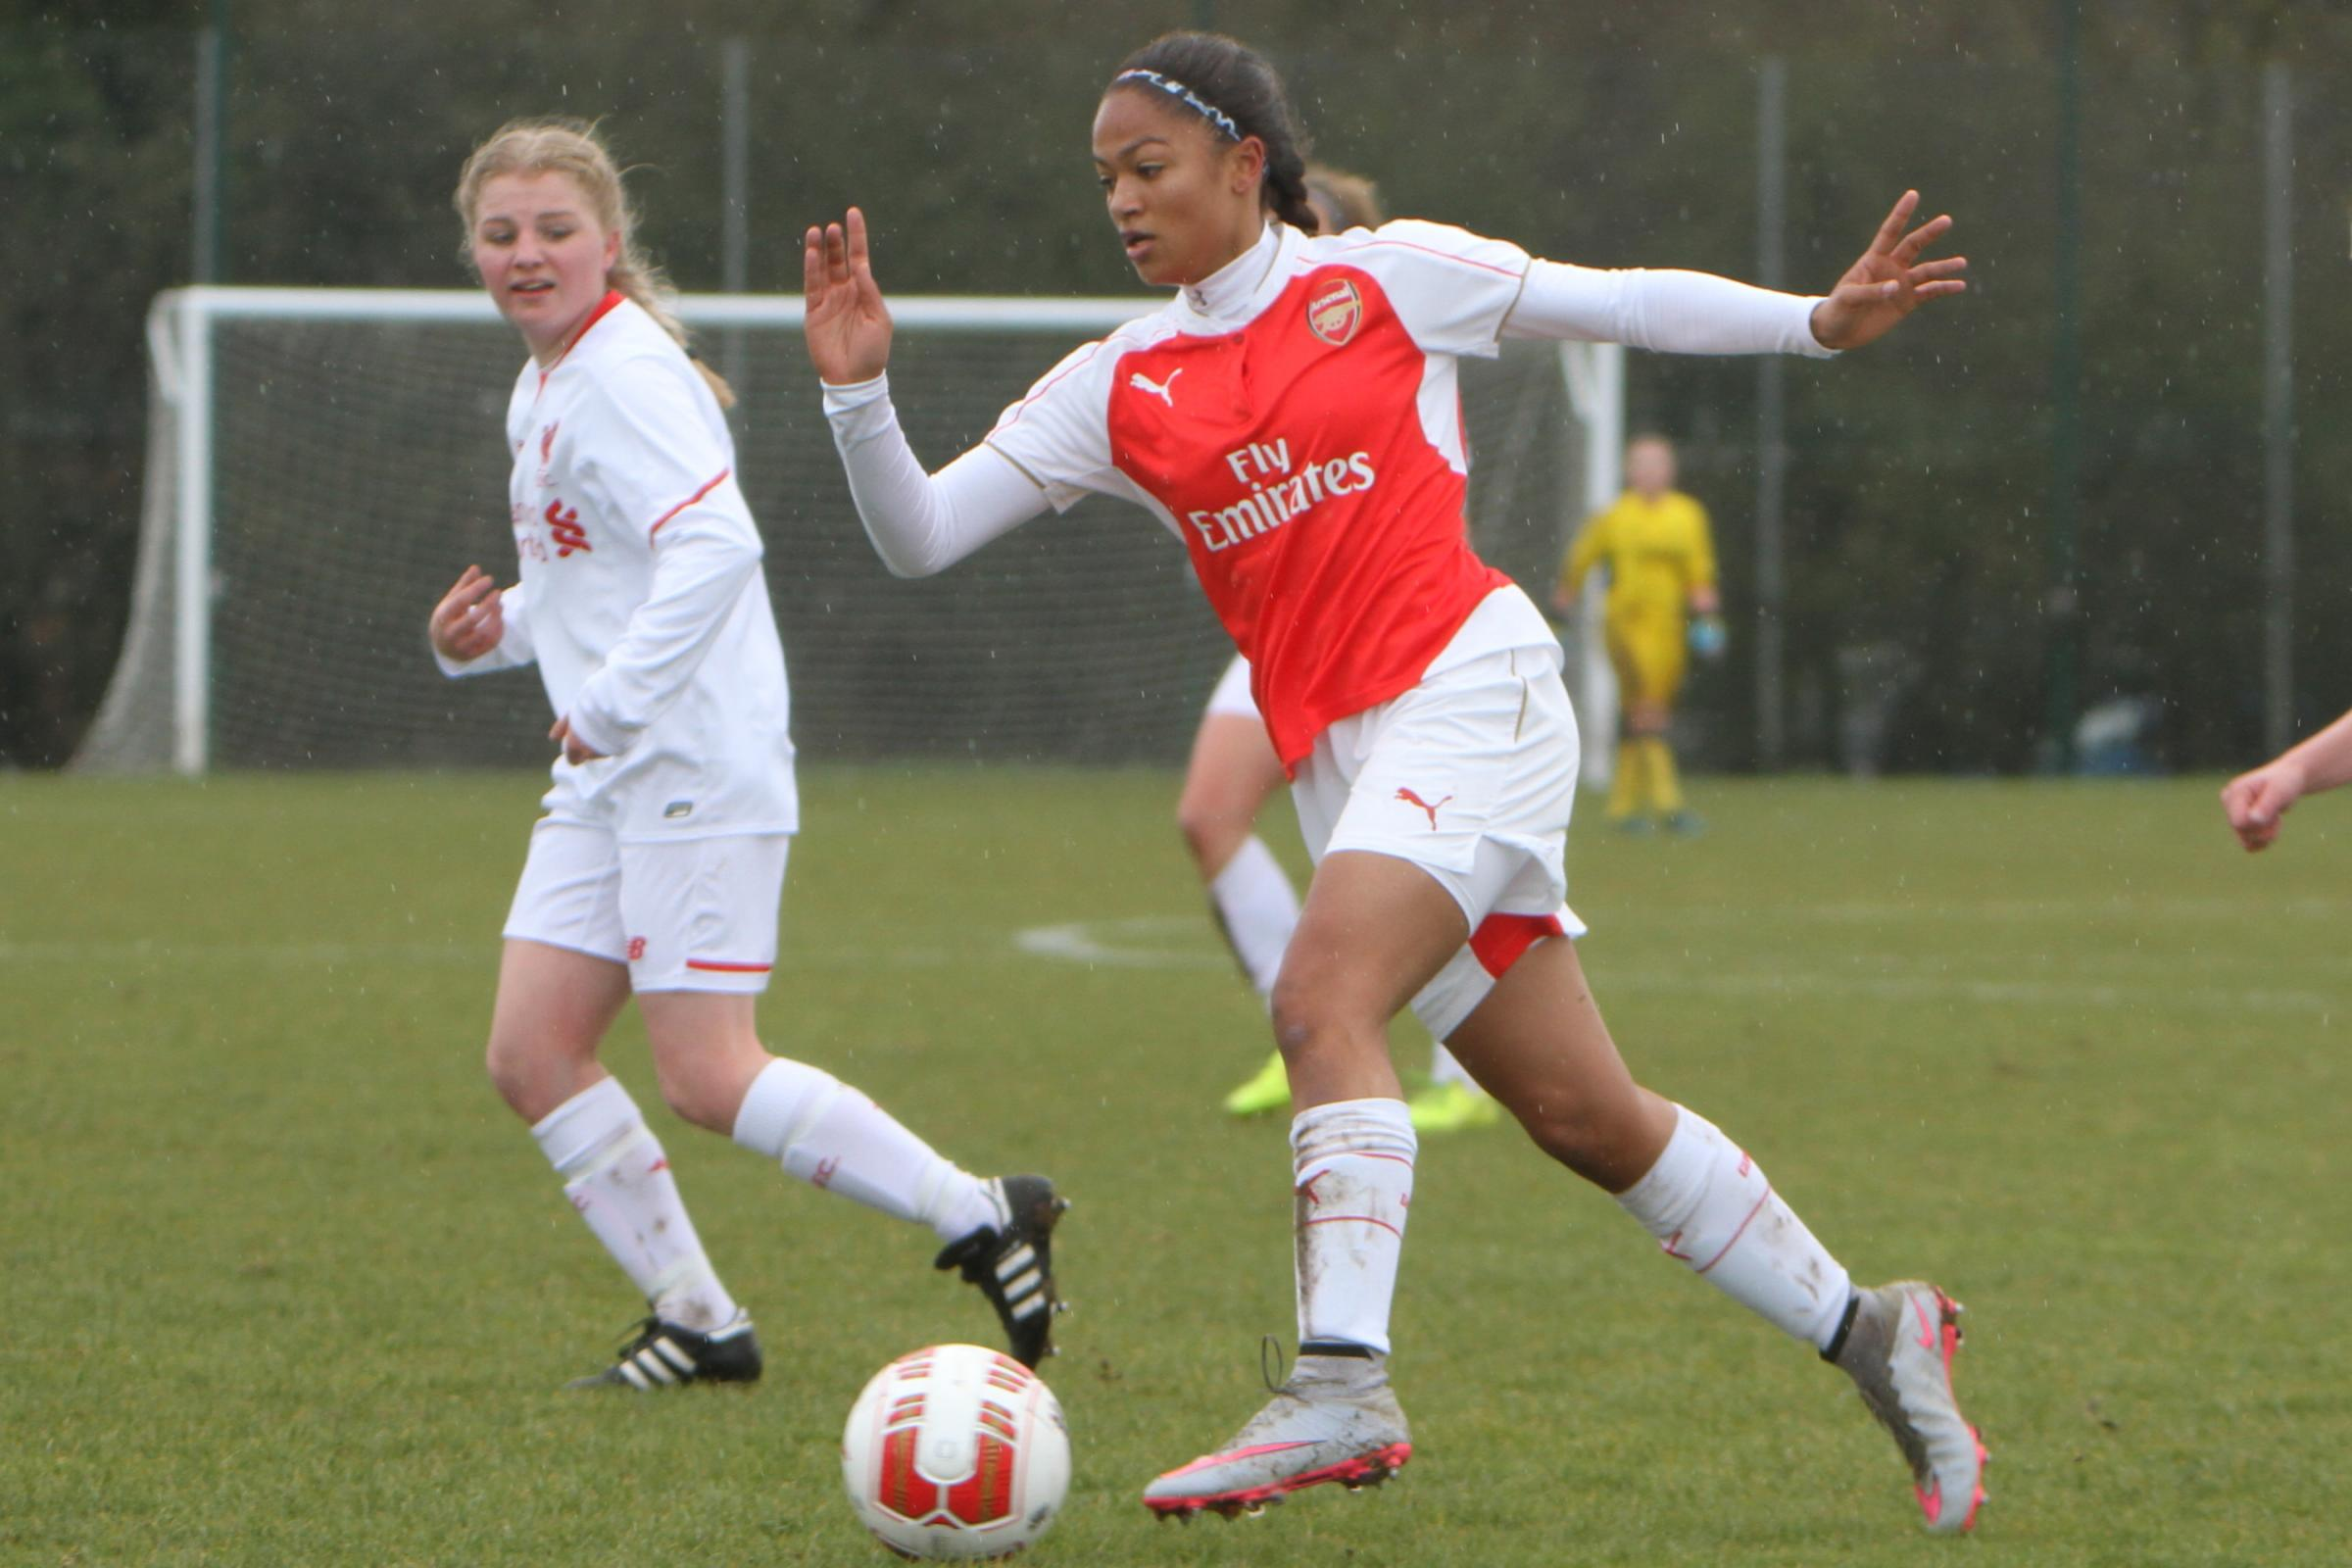 Hinds is looking to make the breakthrough with Arsenal